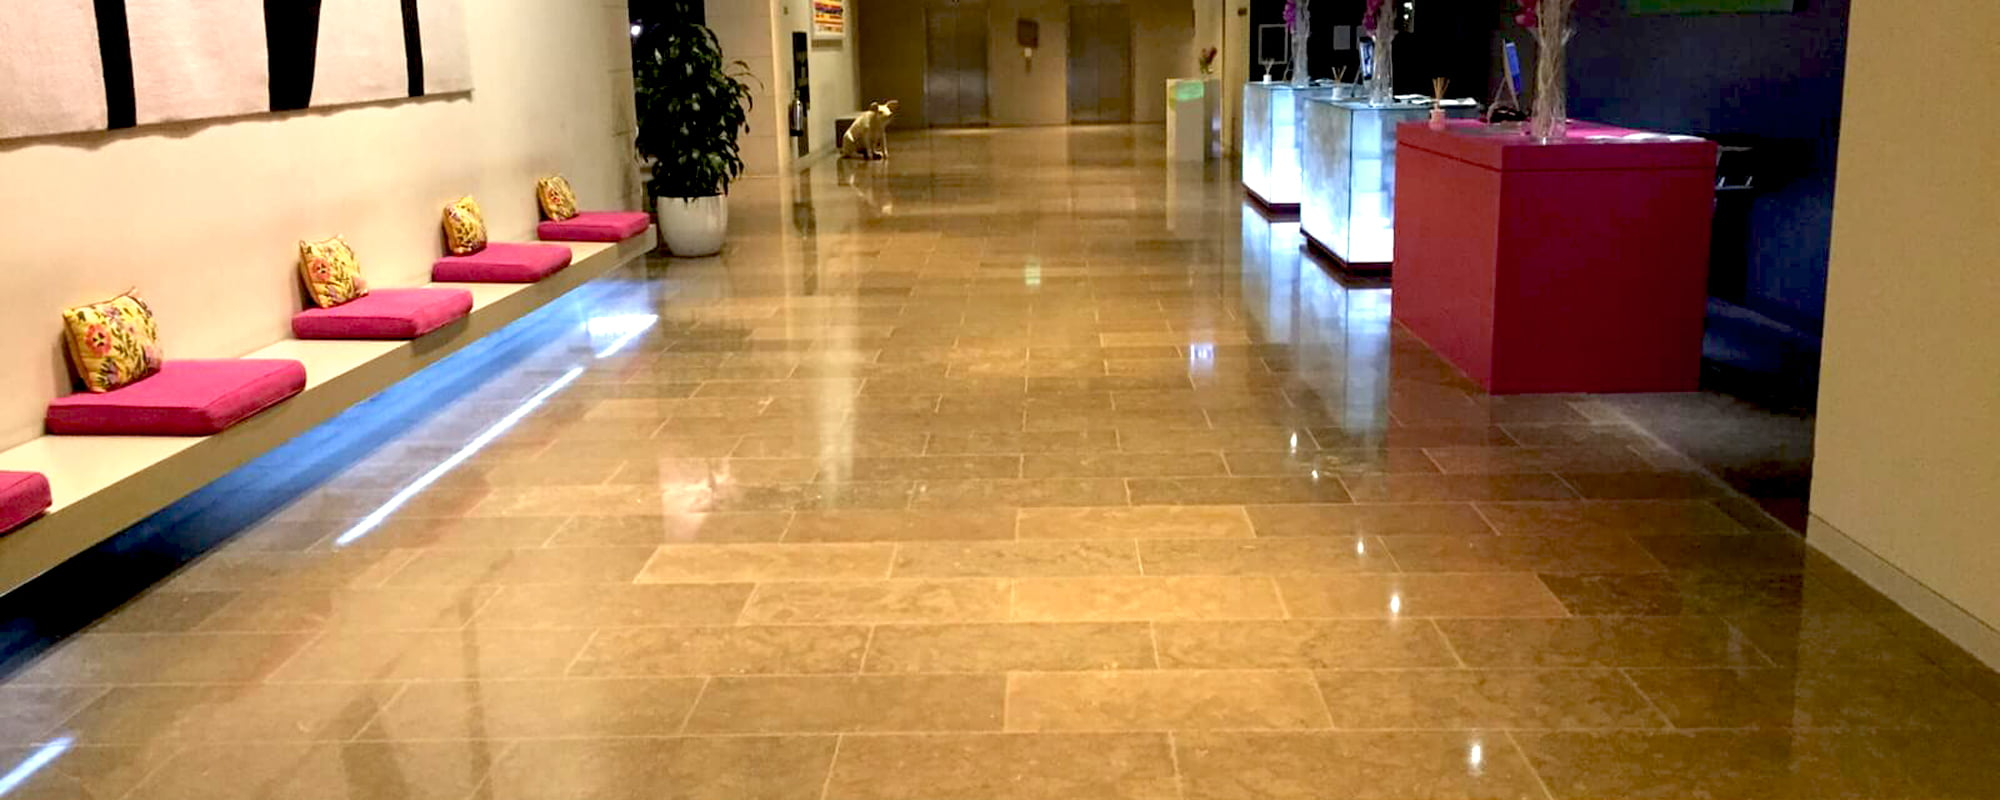 floor polishing services Dublin